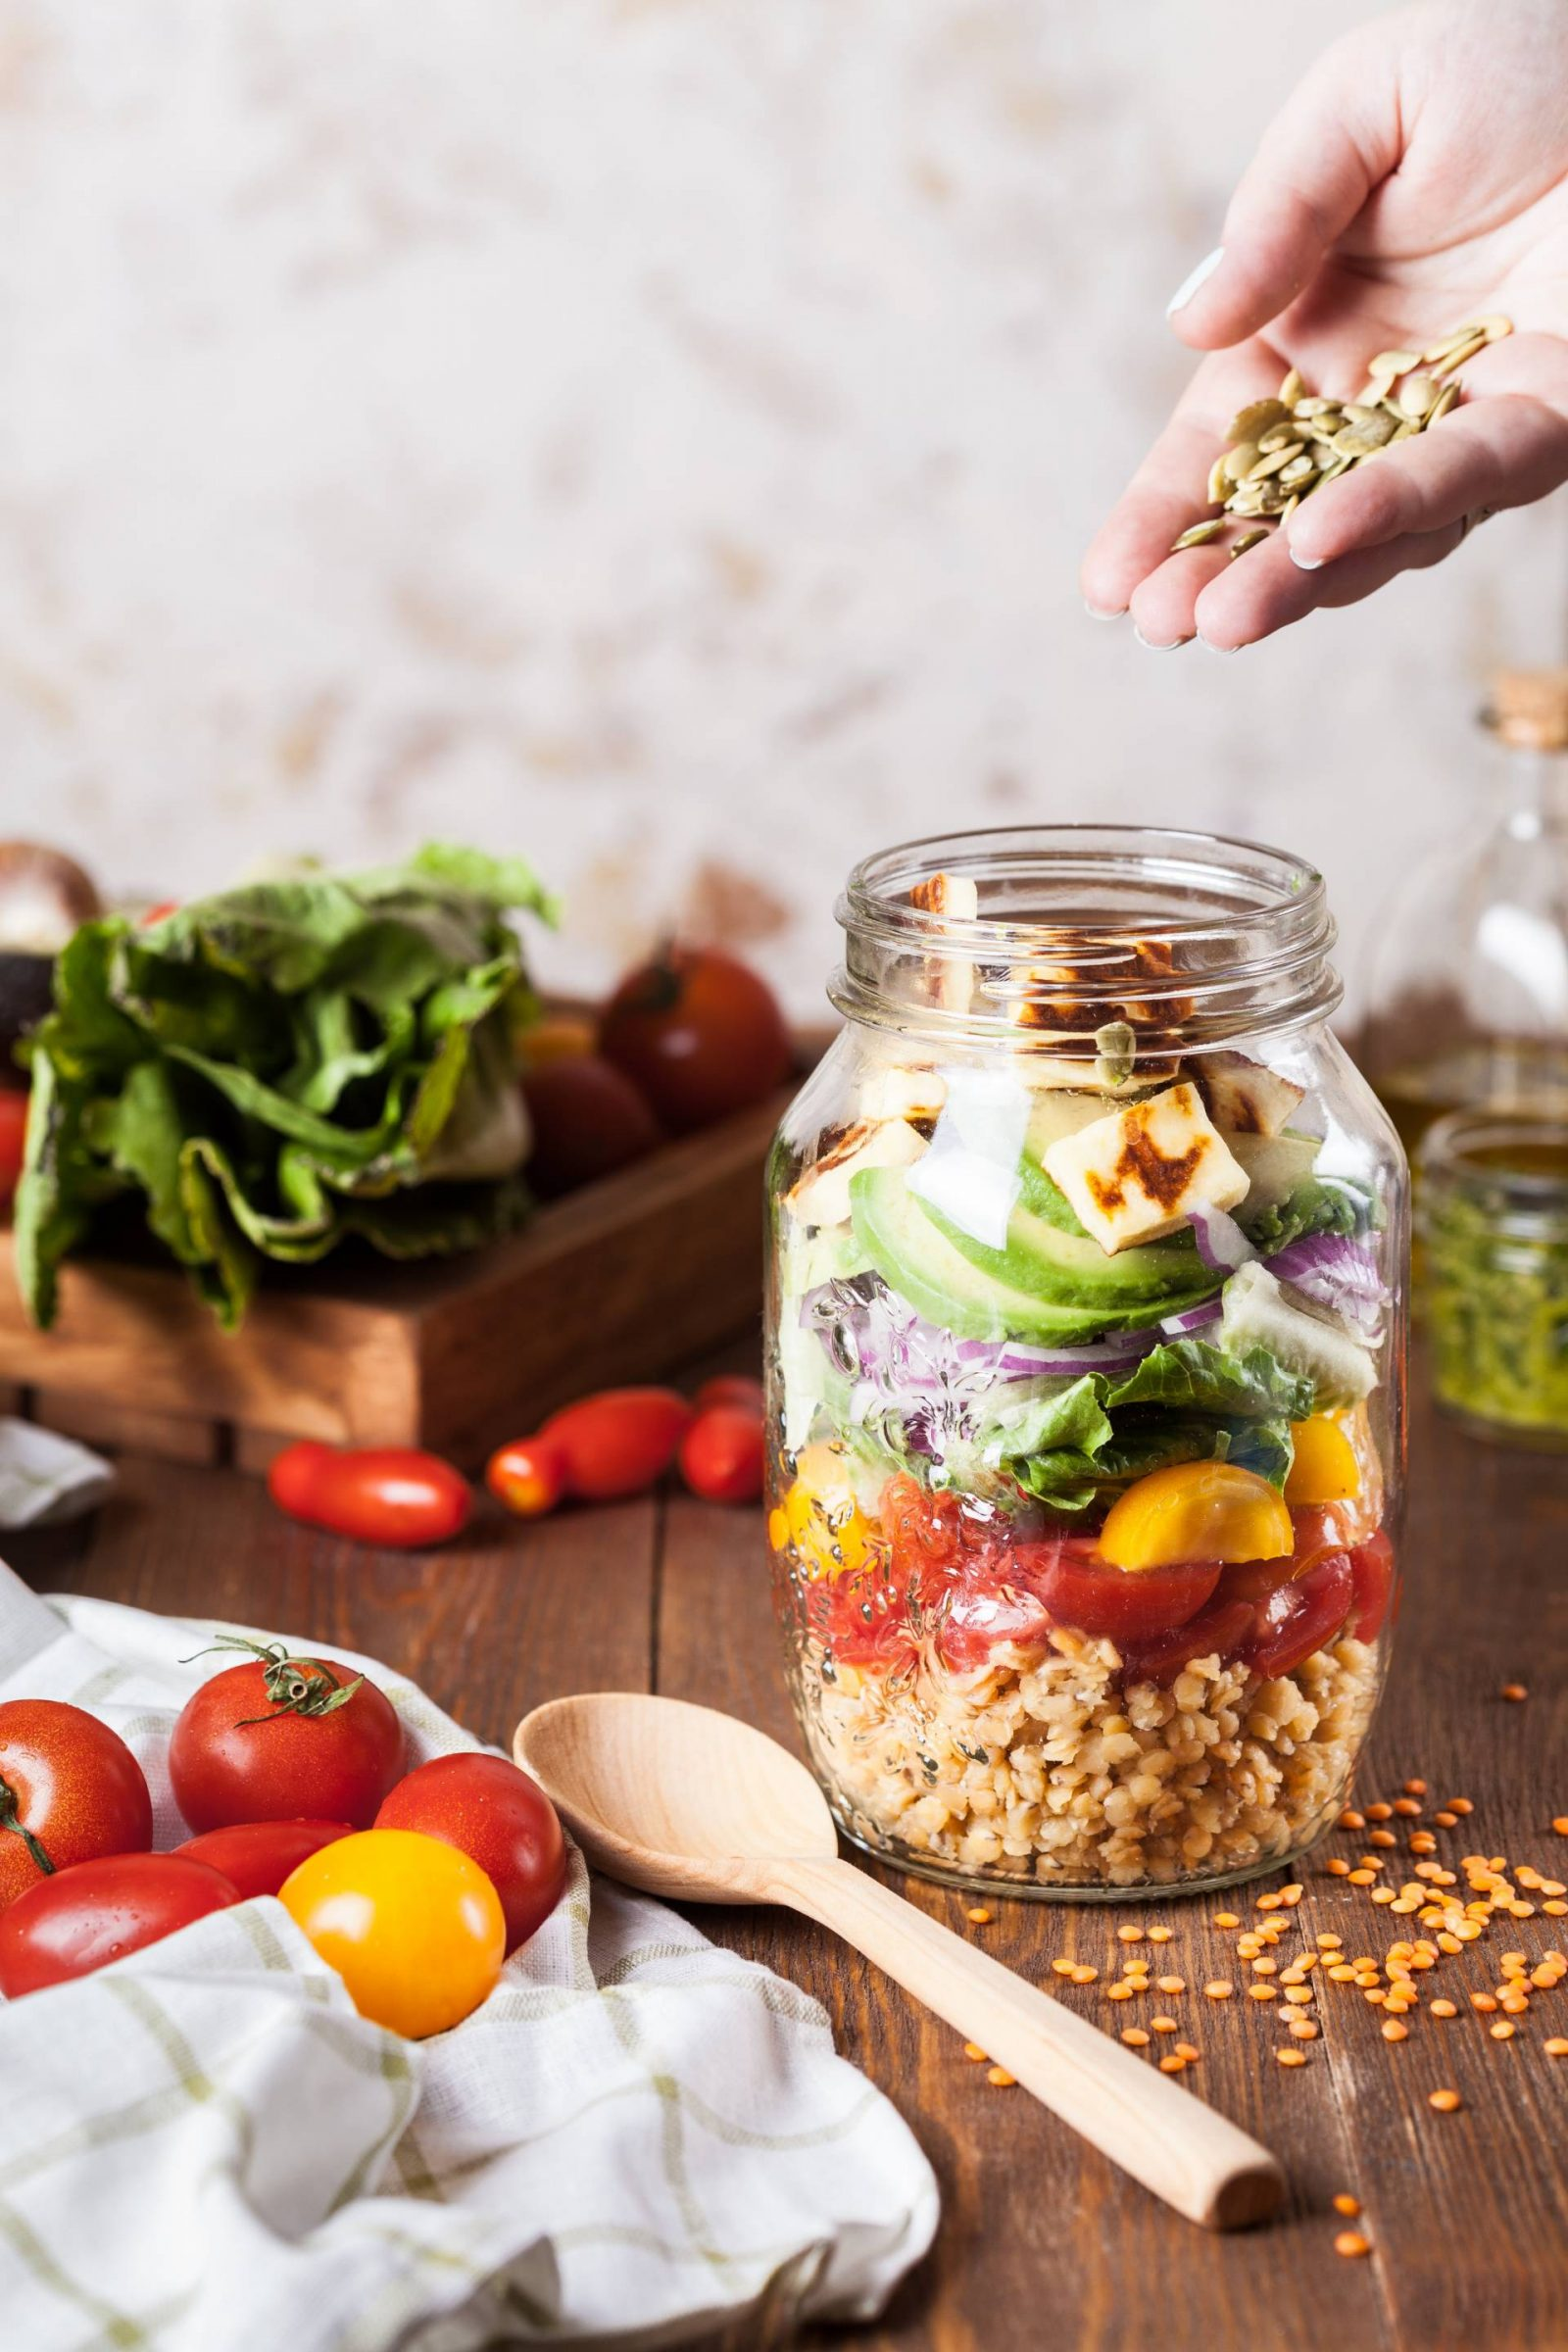 Six months of being vegan, glass jar filled with salad and seeds